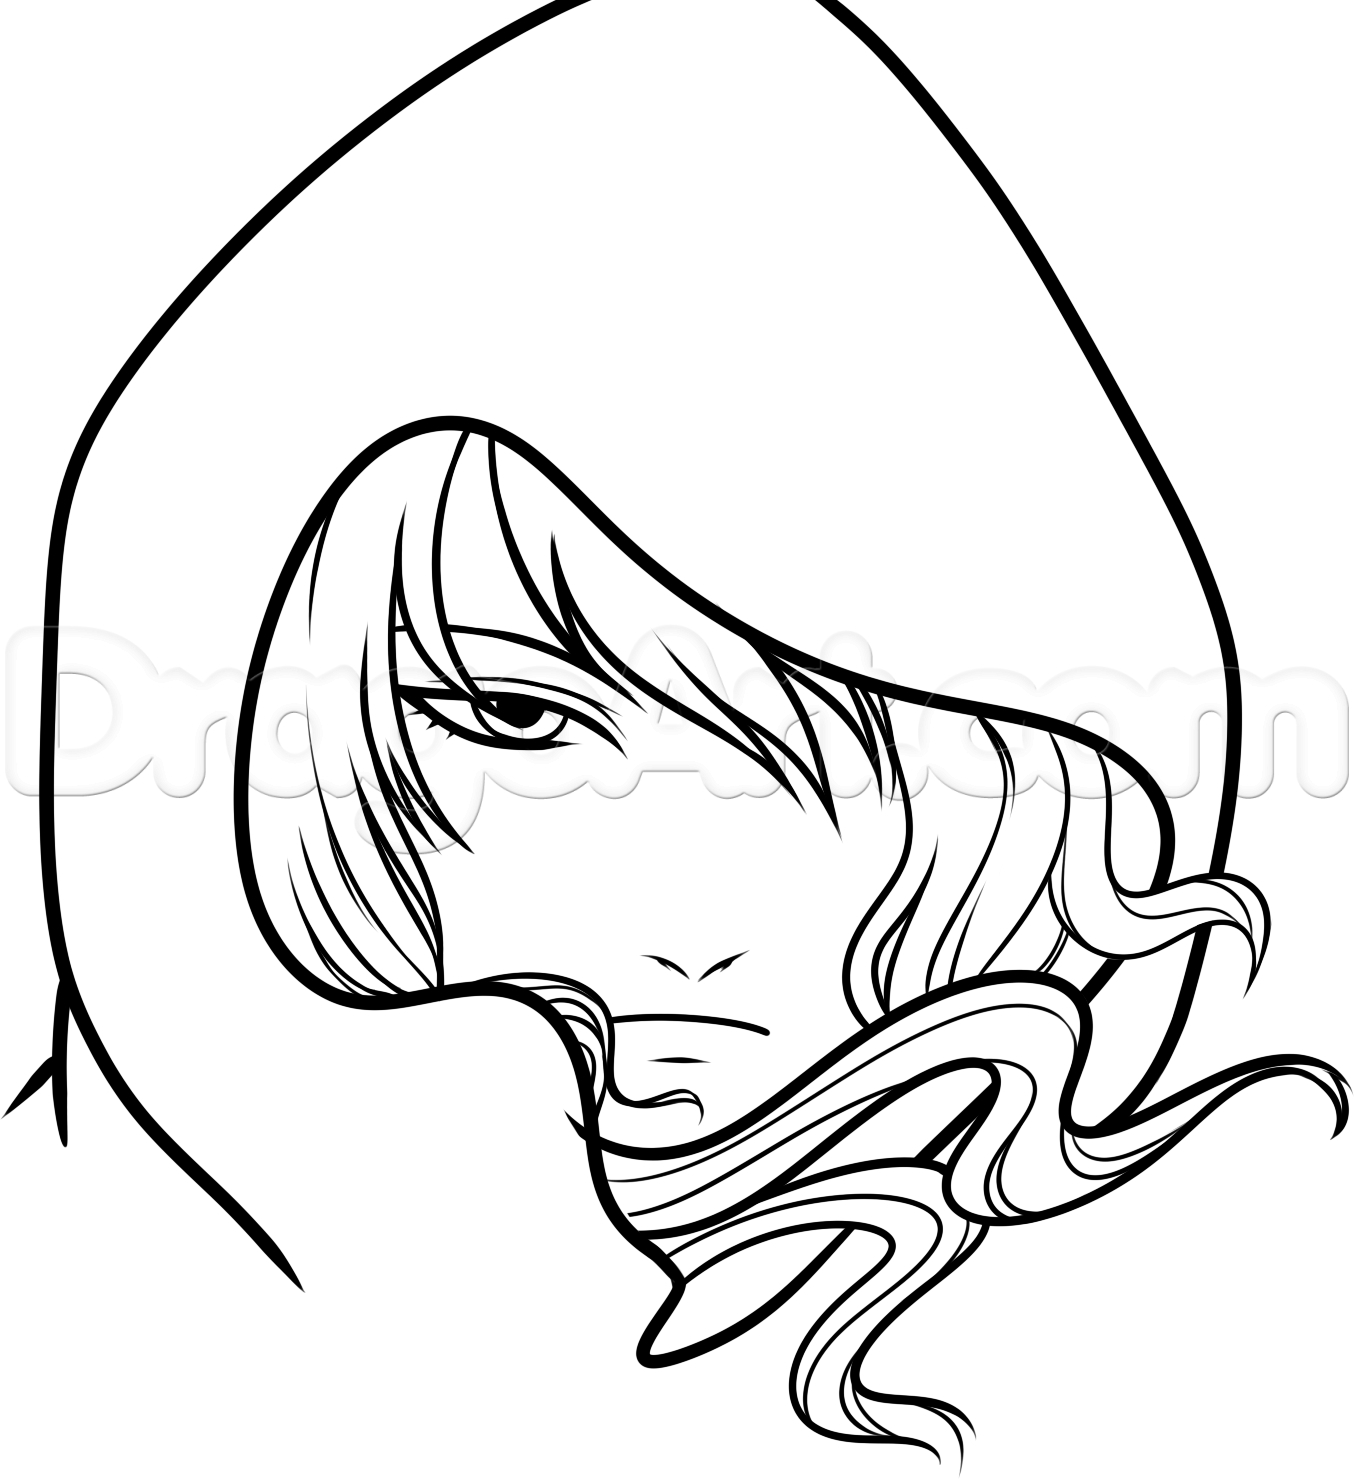 Anime Template For Drawing At Getdrawings Free For Personal